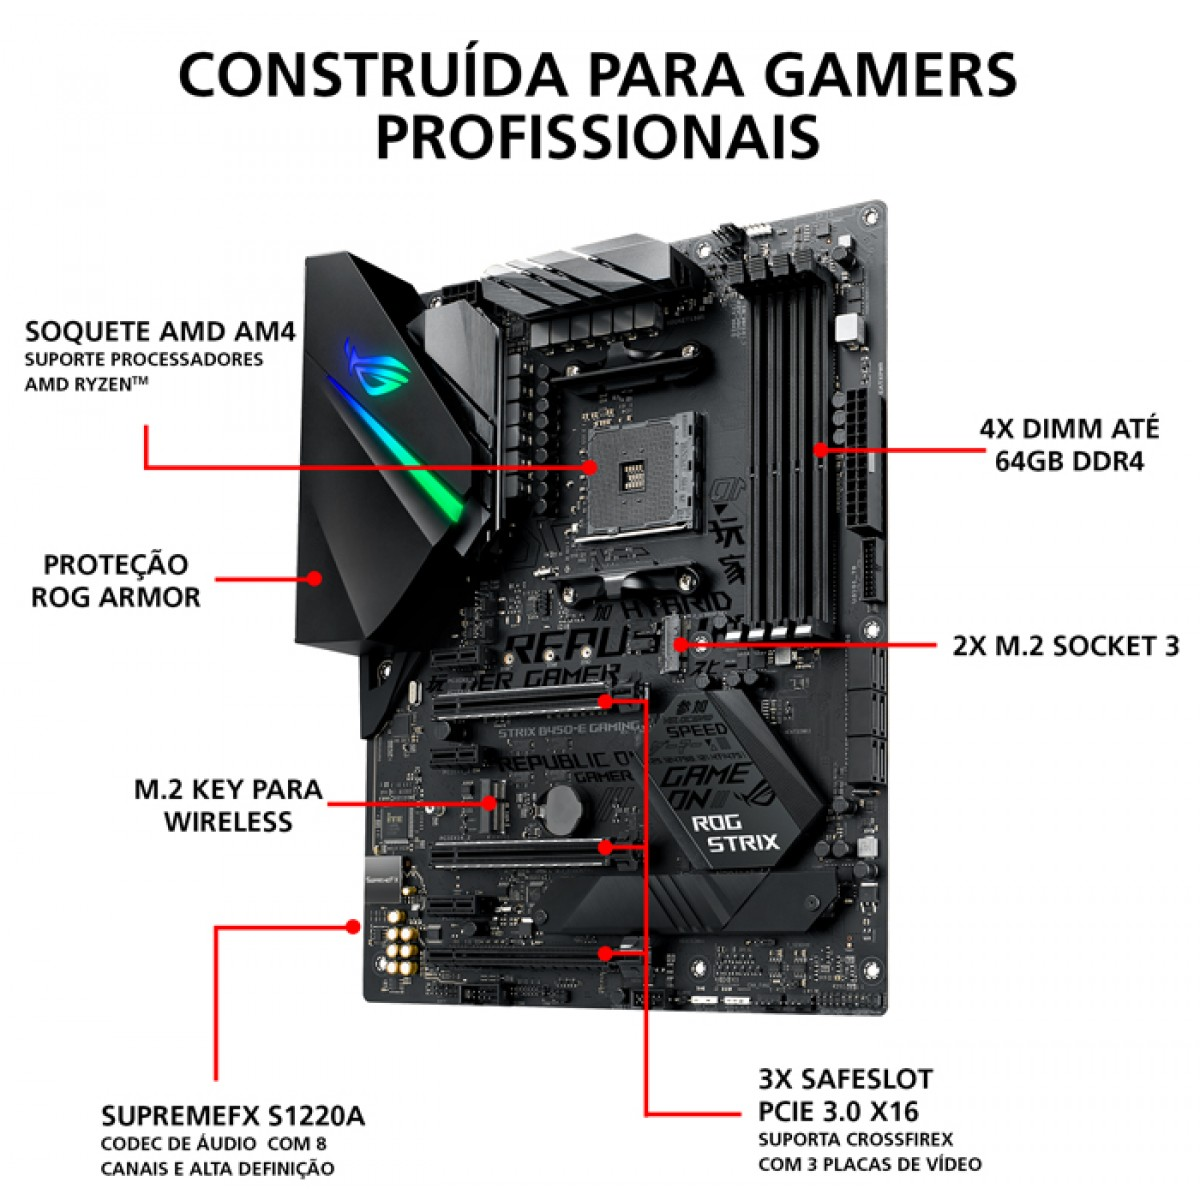 Placa Mãe Asus ROG STRIX B450-E GAMING Wifi, Chipset B450, AMD AM4, ATX, DDR4